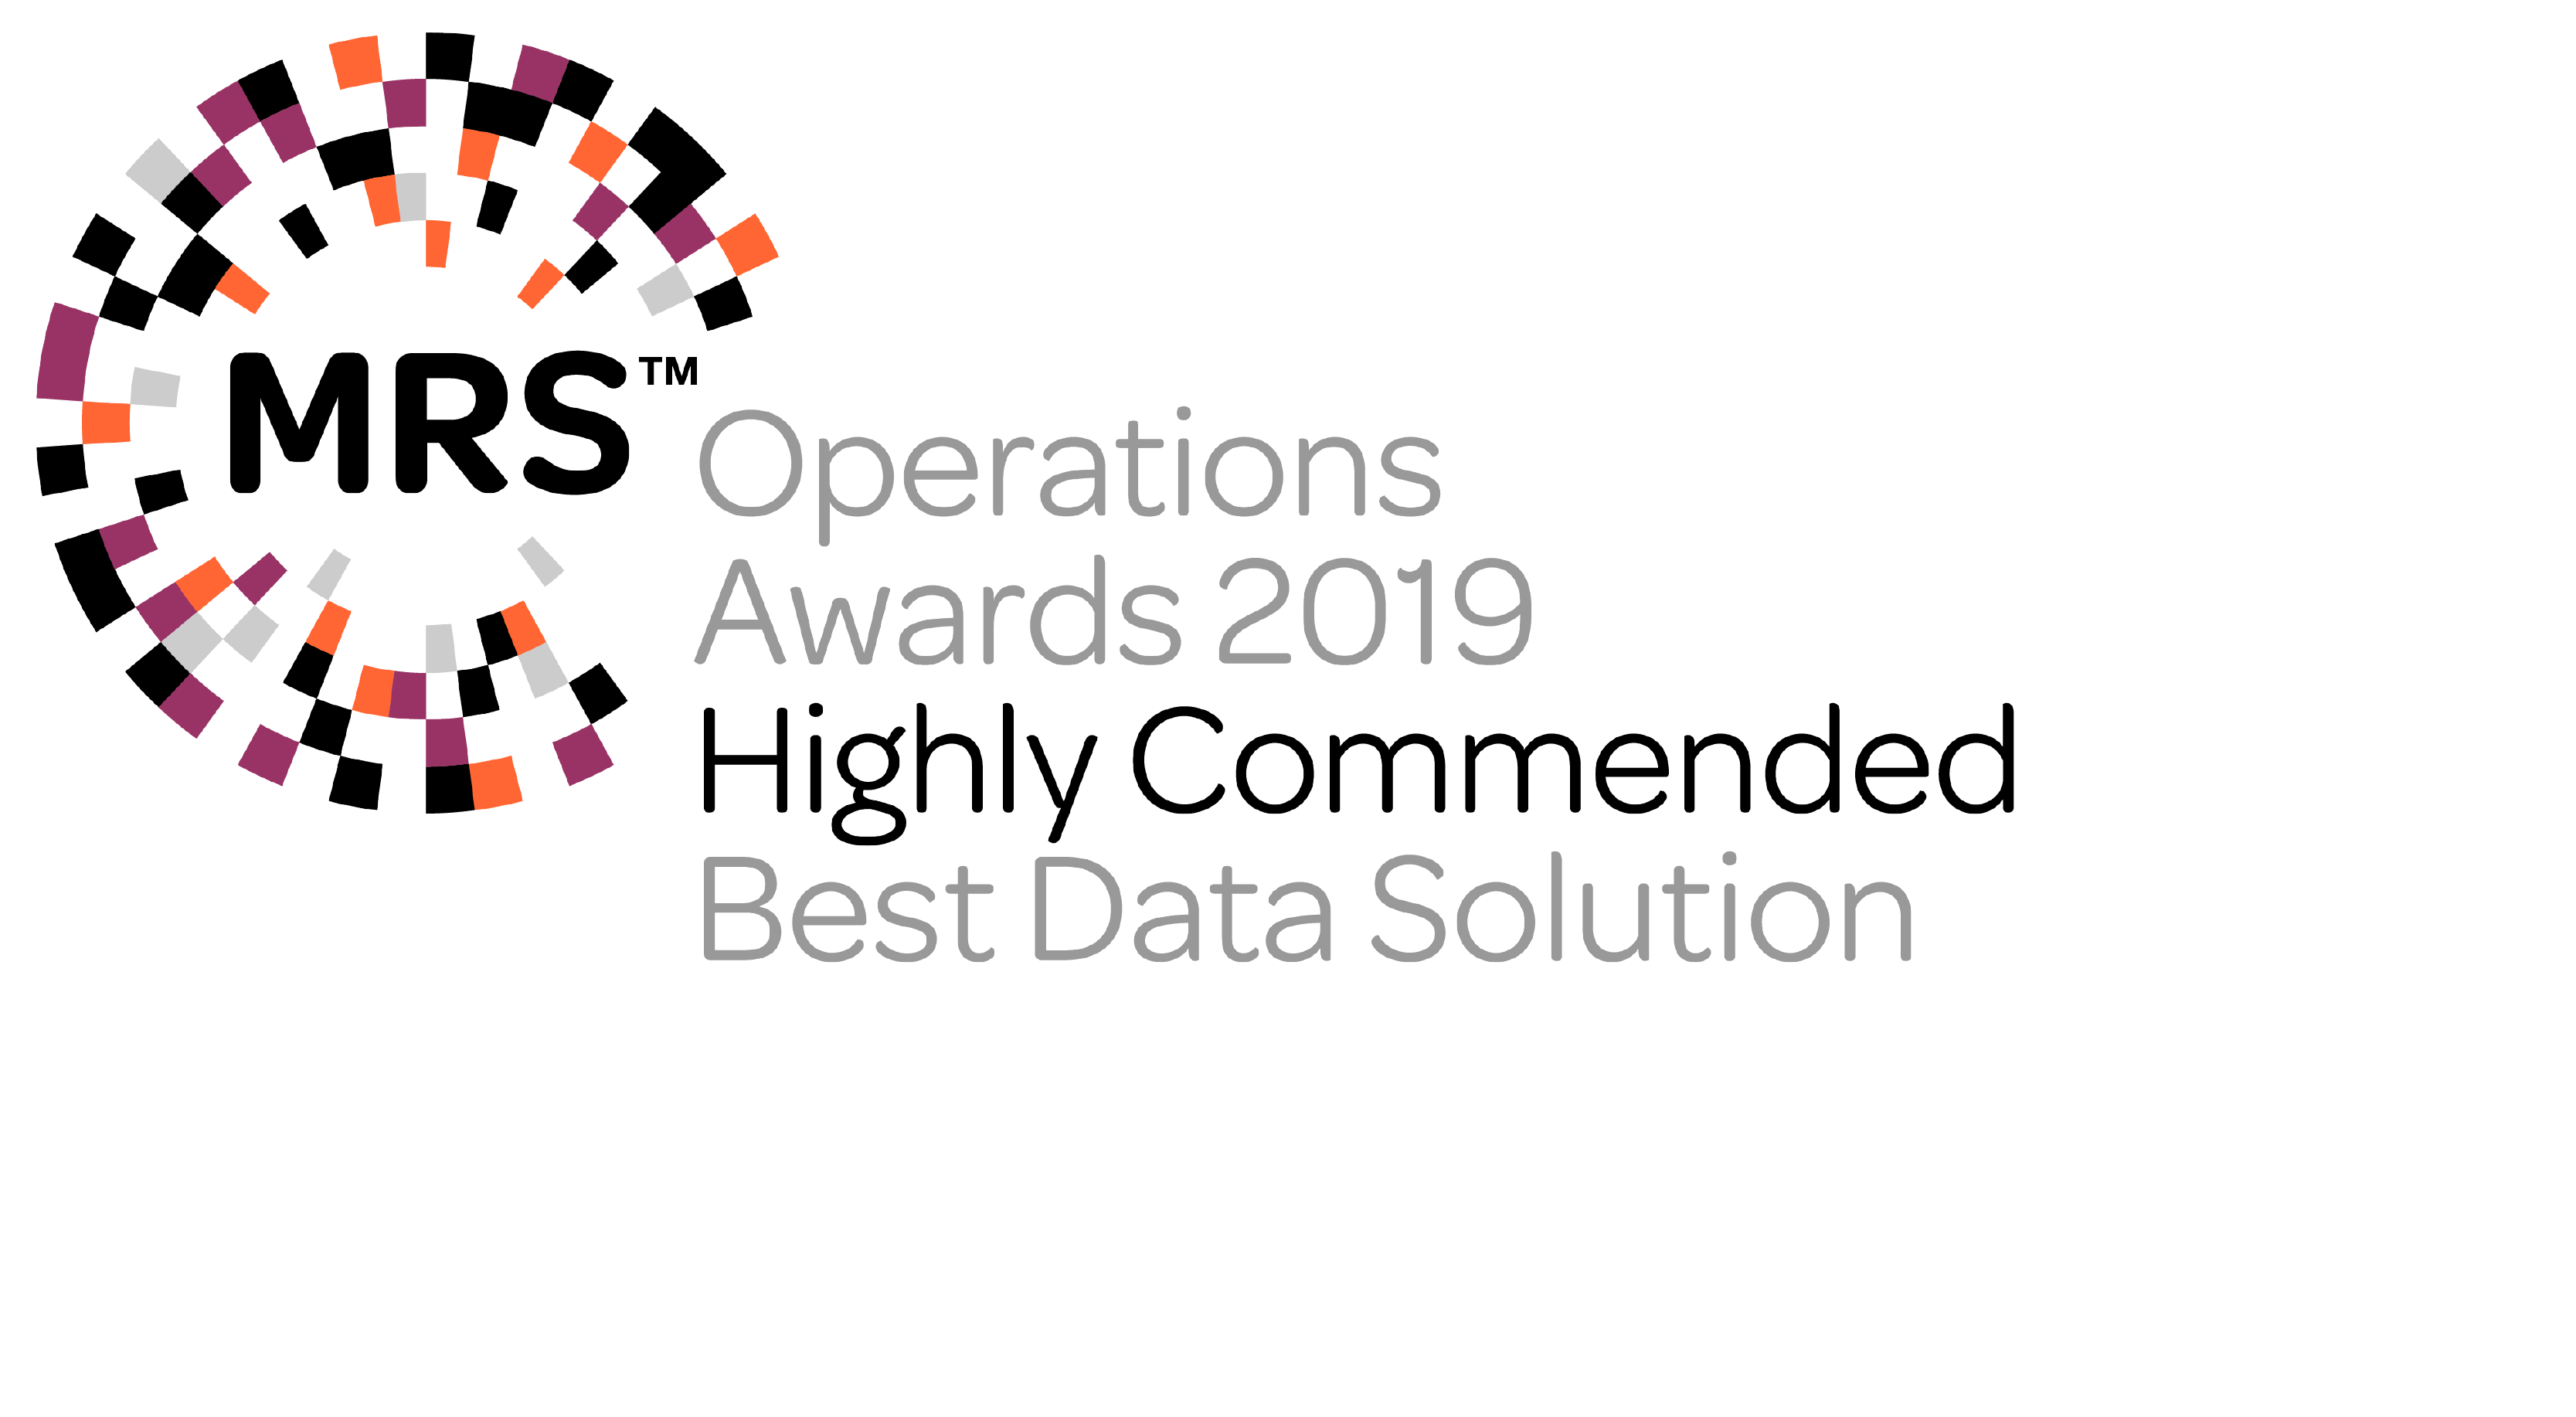 400px_Best Data Solution, 2019